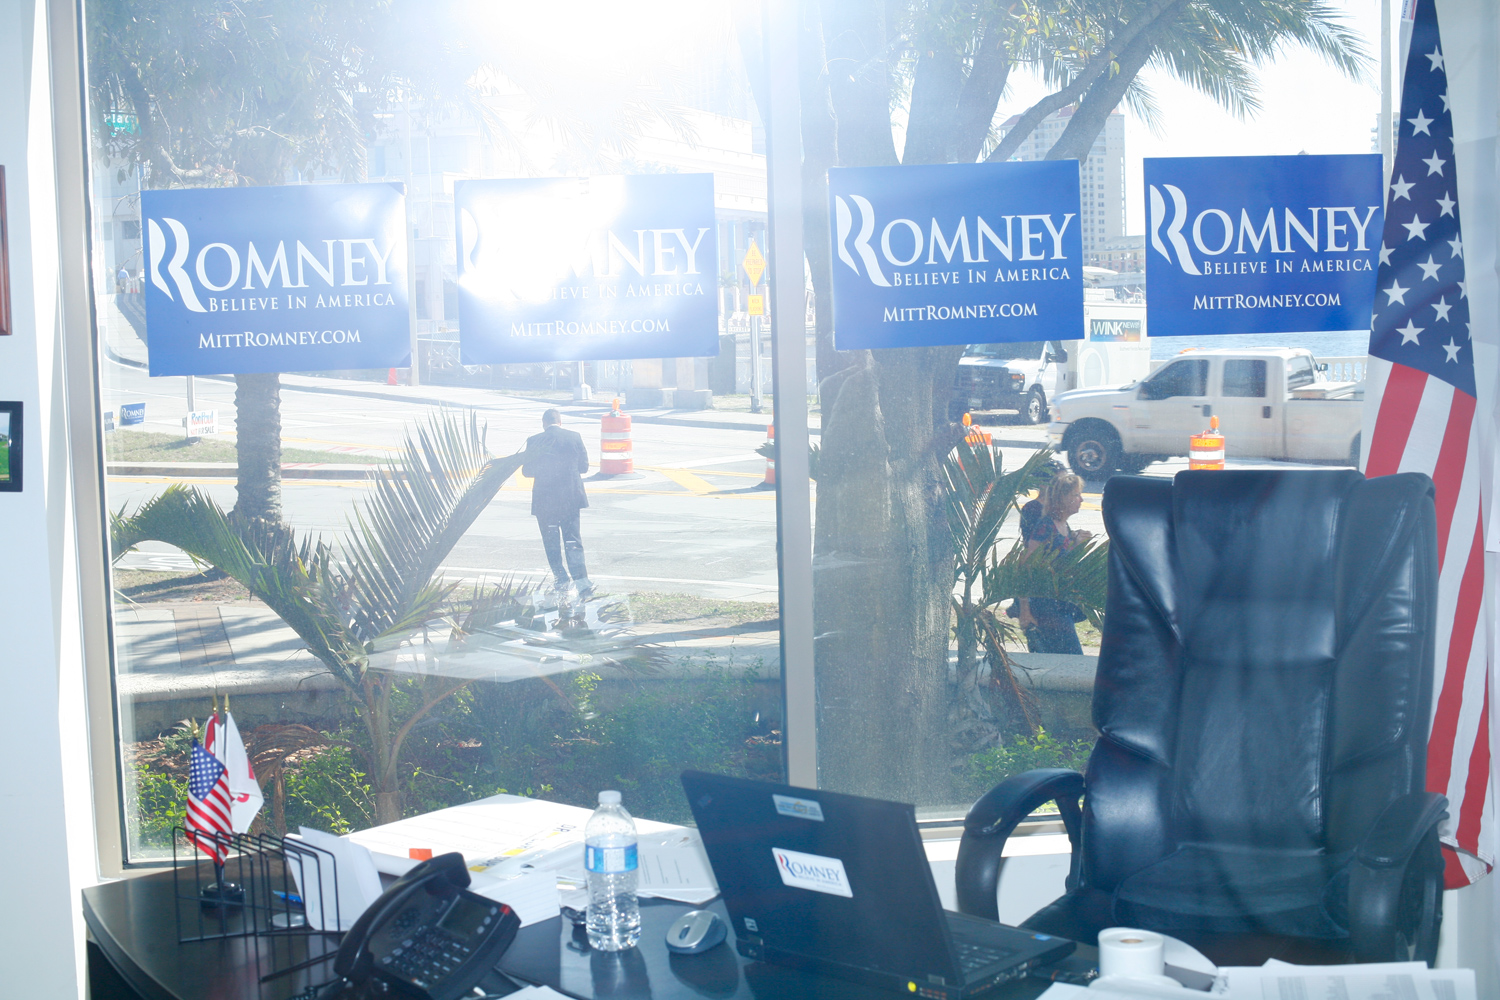 Romney election headquarters in Tampa, Florida, January 31, 2012.